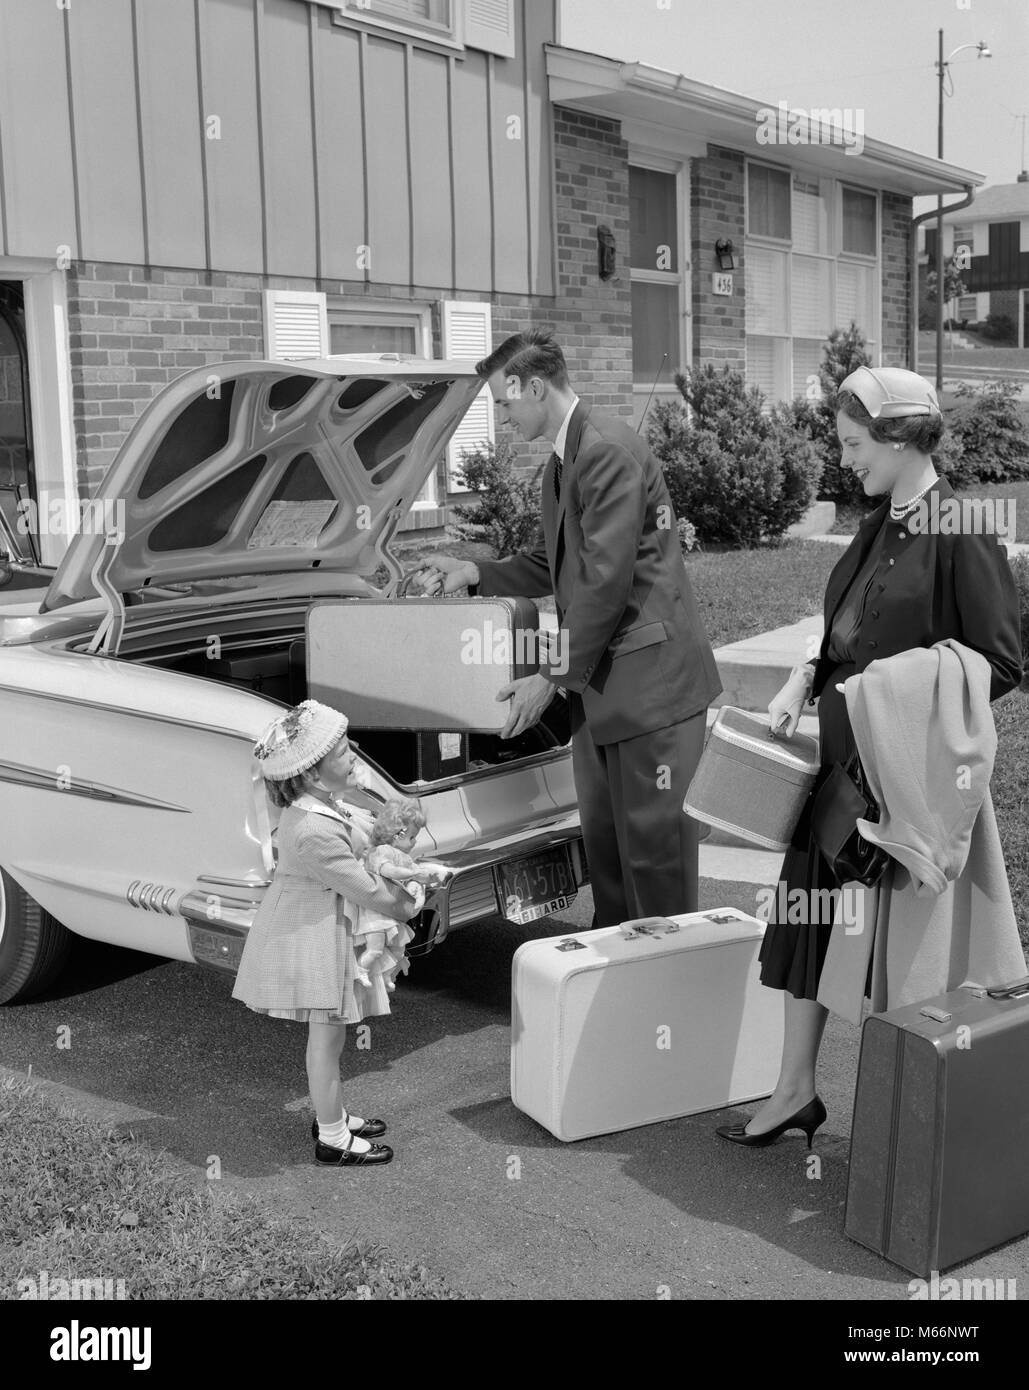 1950s FAMILY PACKING LUGGAGE INTO CAR TRUNK - m1108 HAR001 HARS STYLISH SUBURBAN PACKING RELATIONSHIP MOTHERS GROUPS - Stock Image